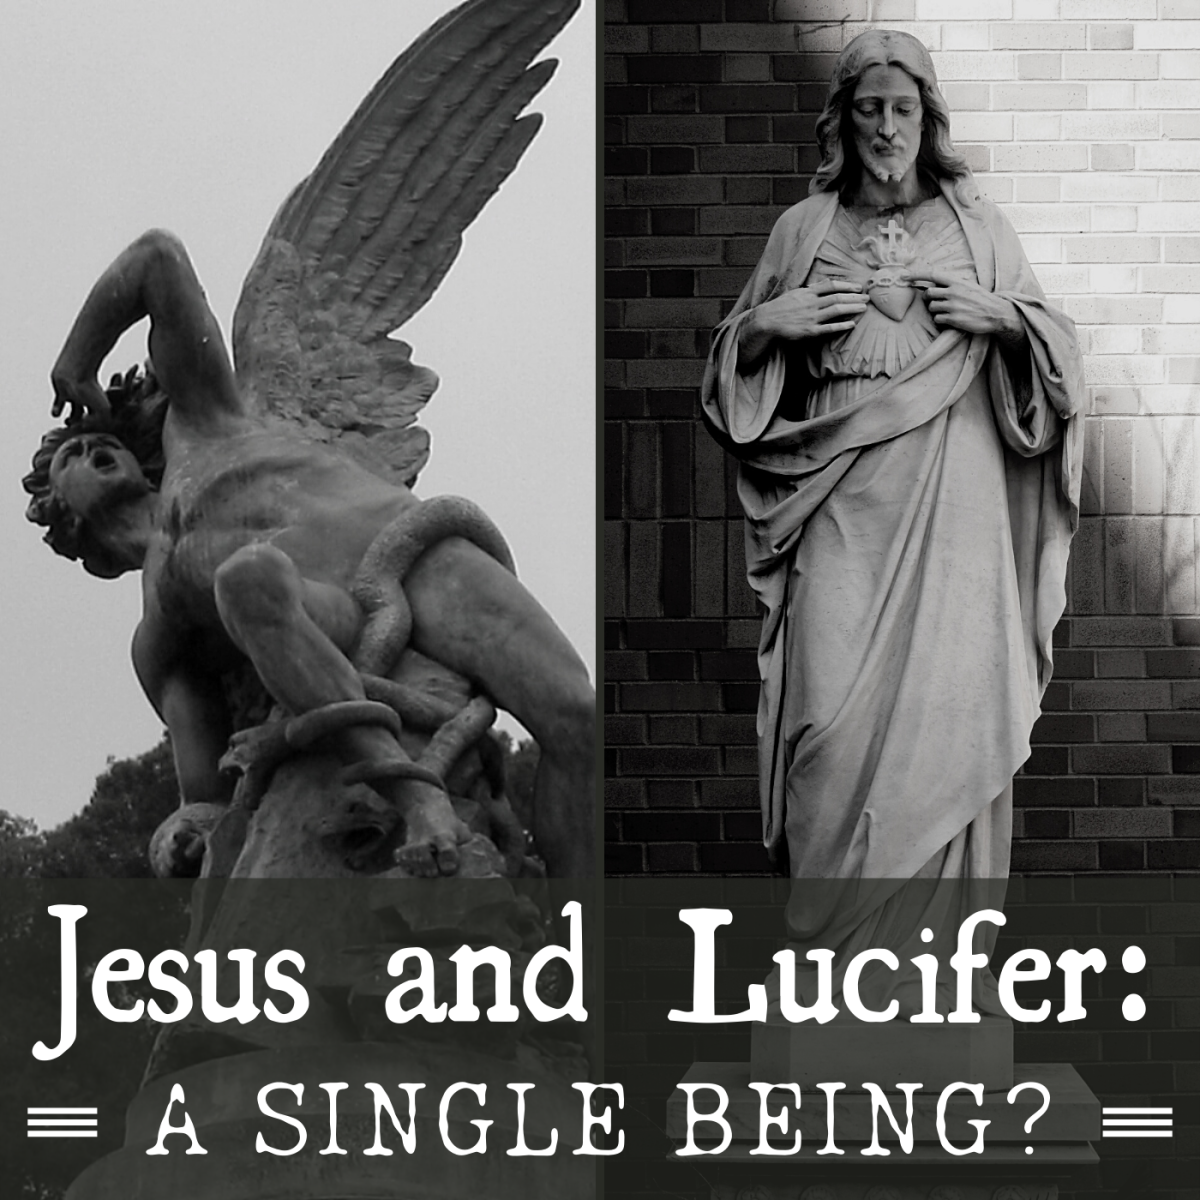 Are Jesus and Lucifer one and the same?